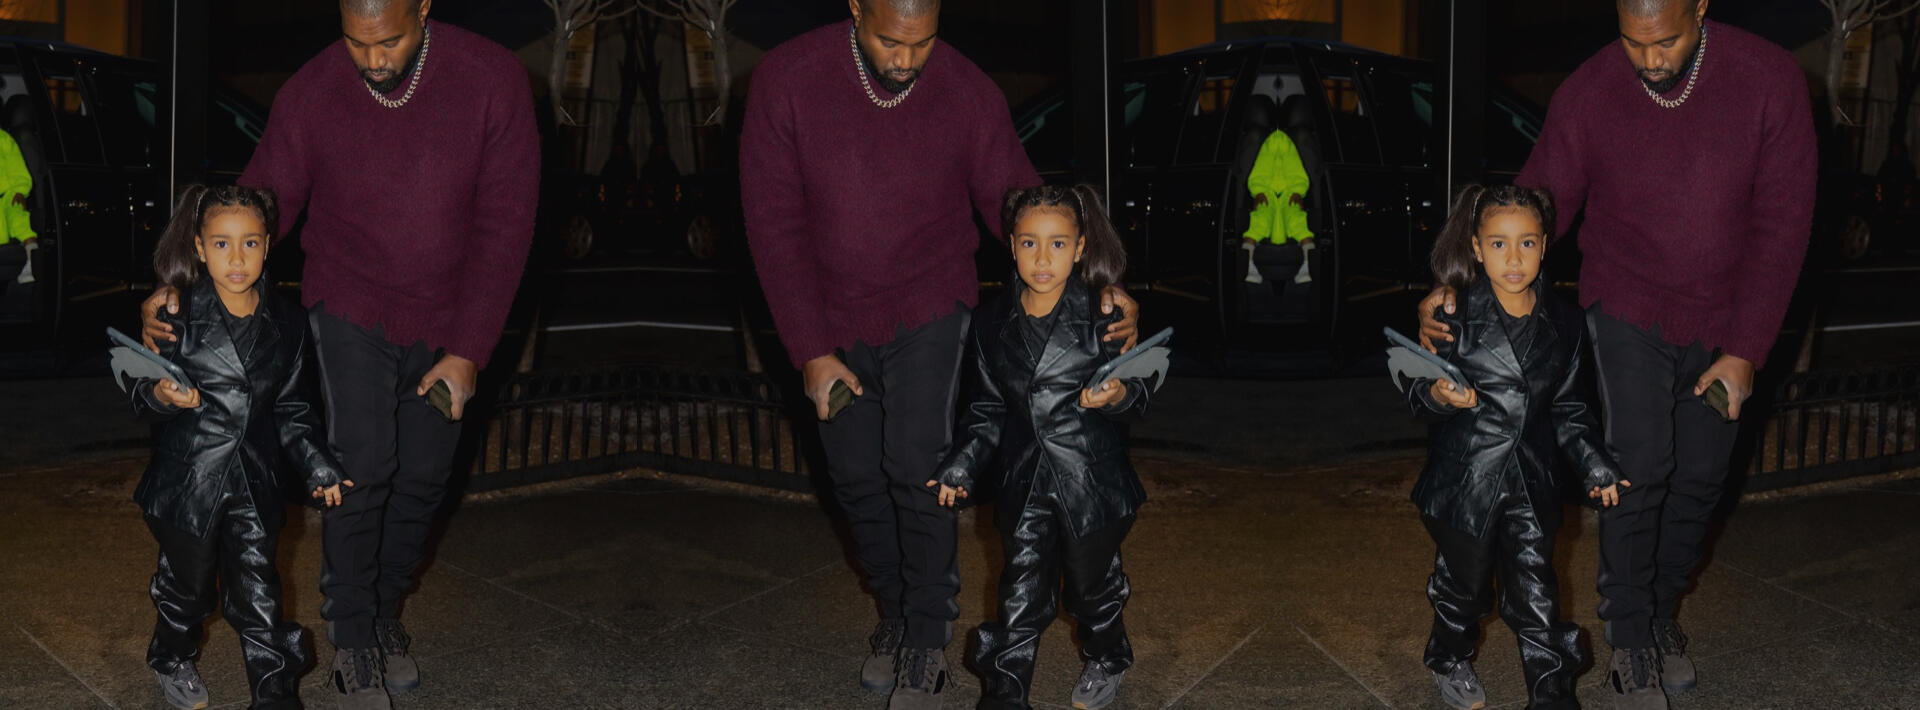 Her style is definitely a legacy of both Kim's and Kanye's.